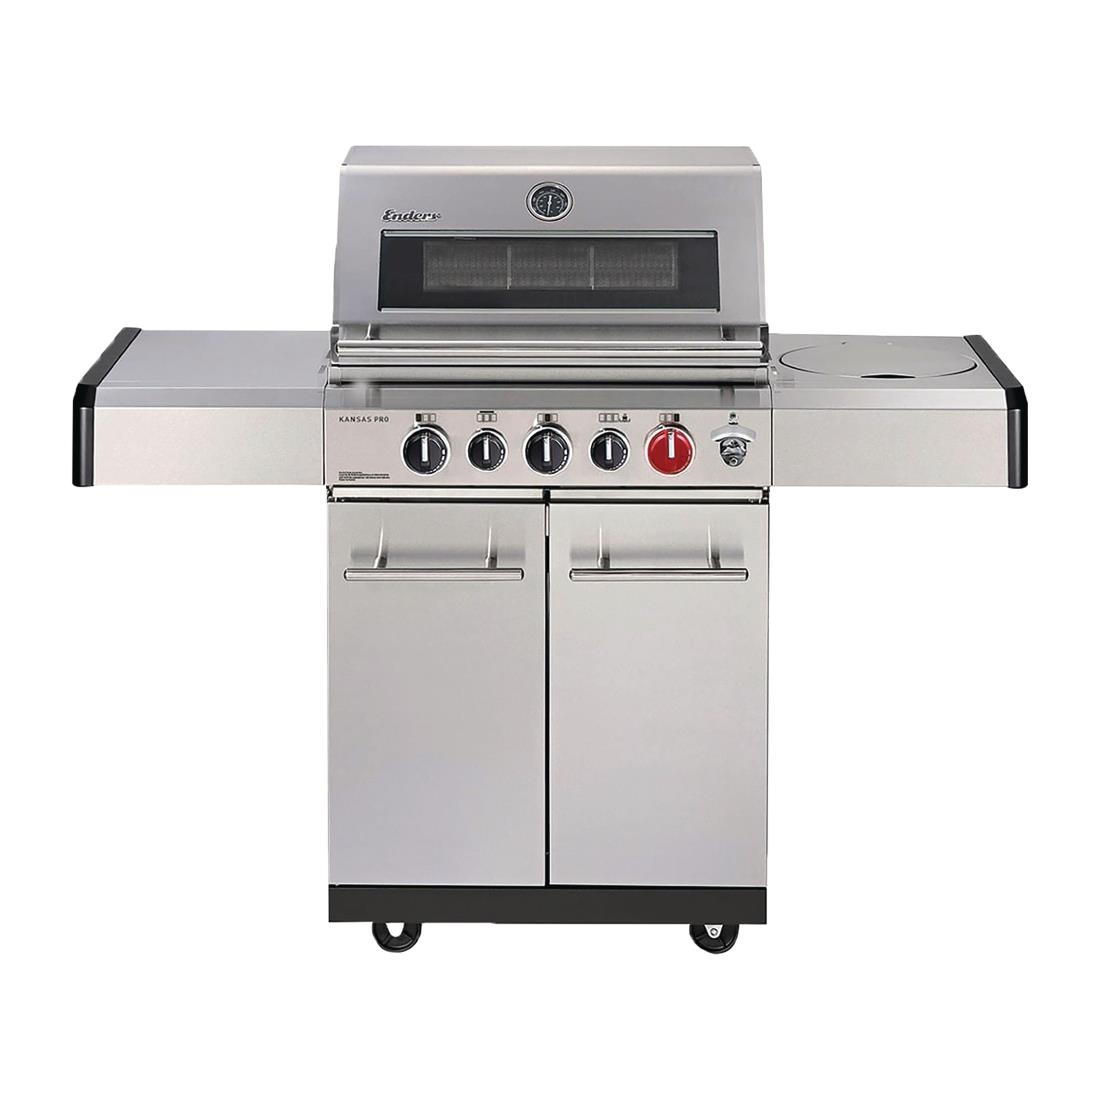 Image of Enders from Lifestyle Kansas Pro 3 Sik Turbo Gas Barbecue